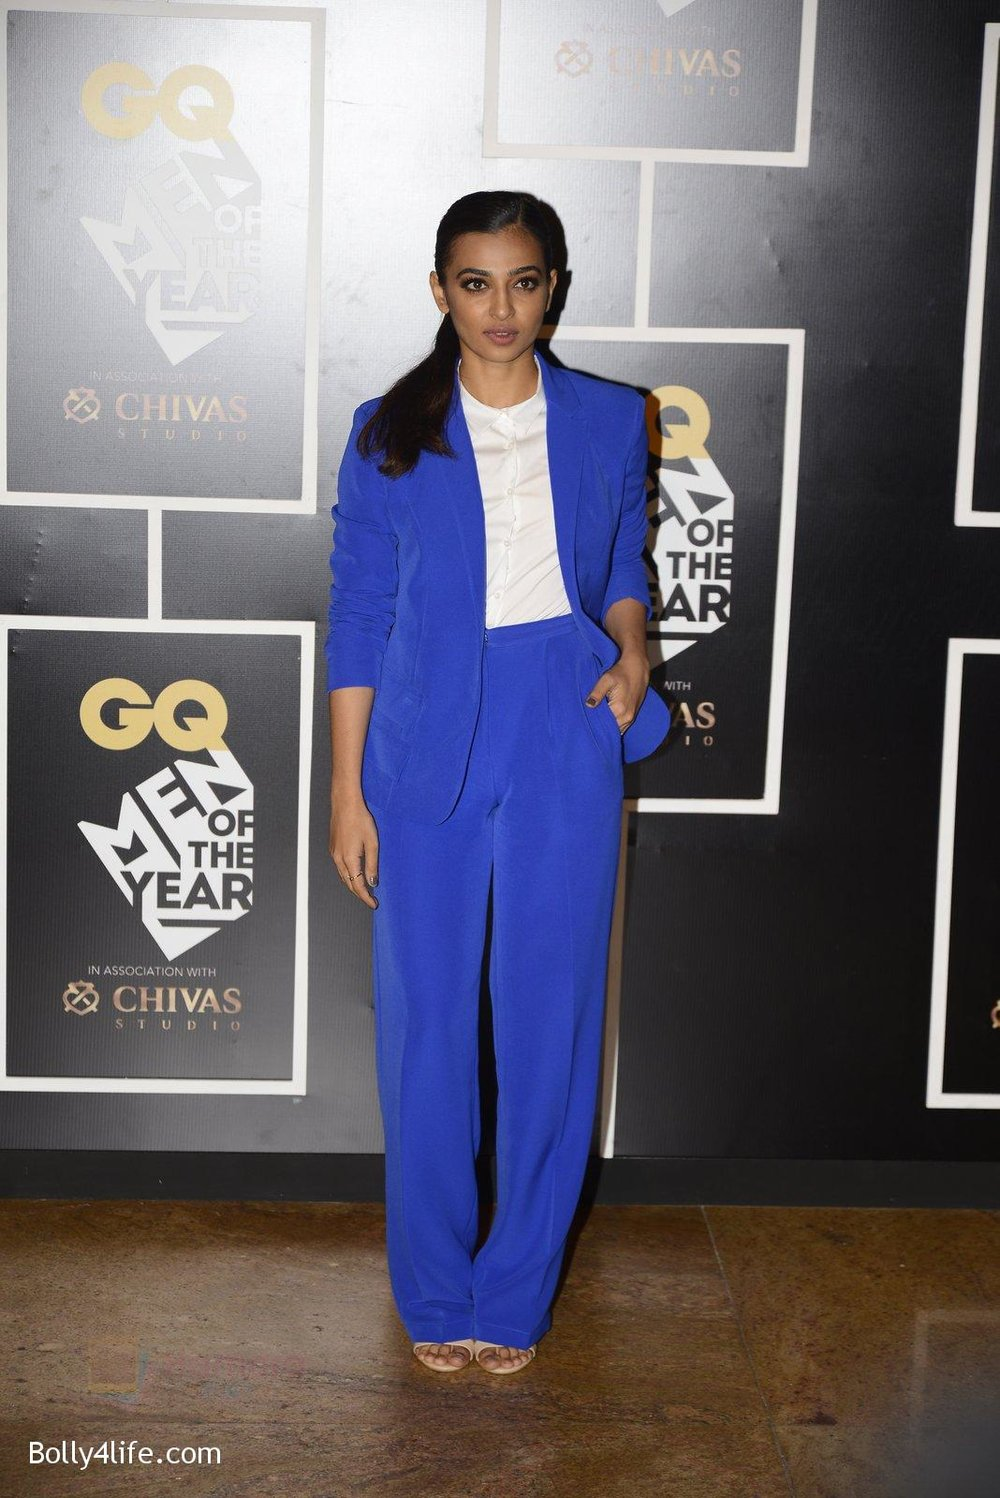 Radhika-Apte-at-GQ-MEN-OF-THE-YEAR-on-27th-Sept-2016-838.jpg